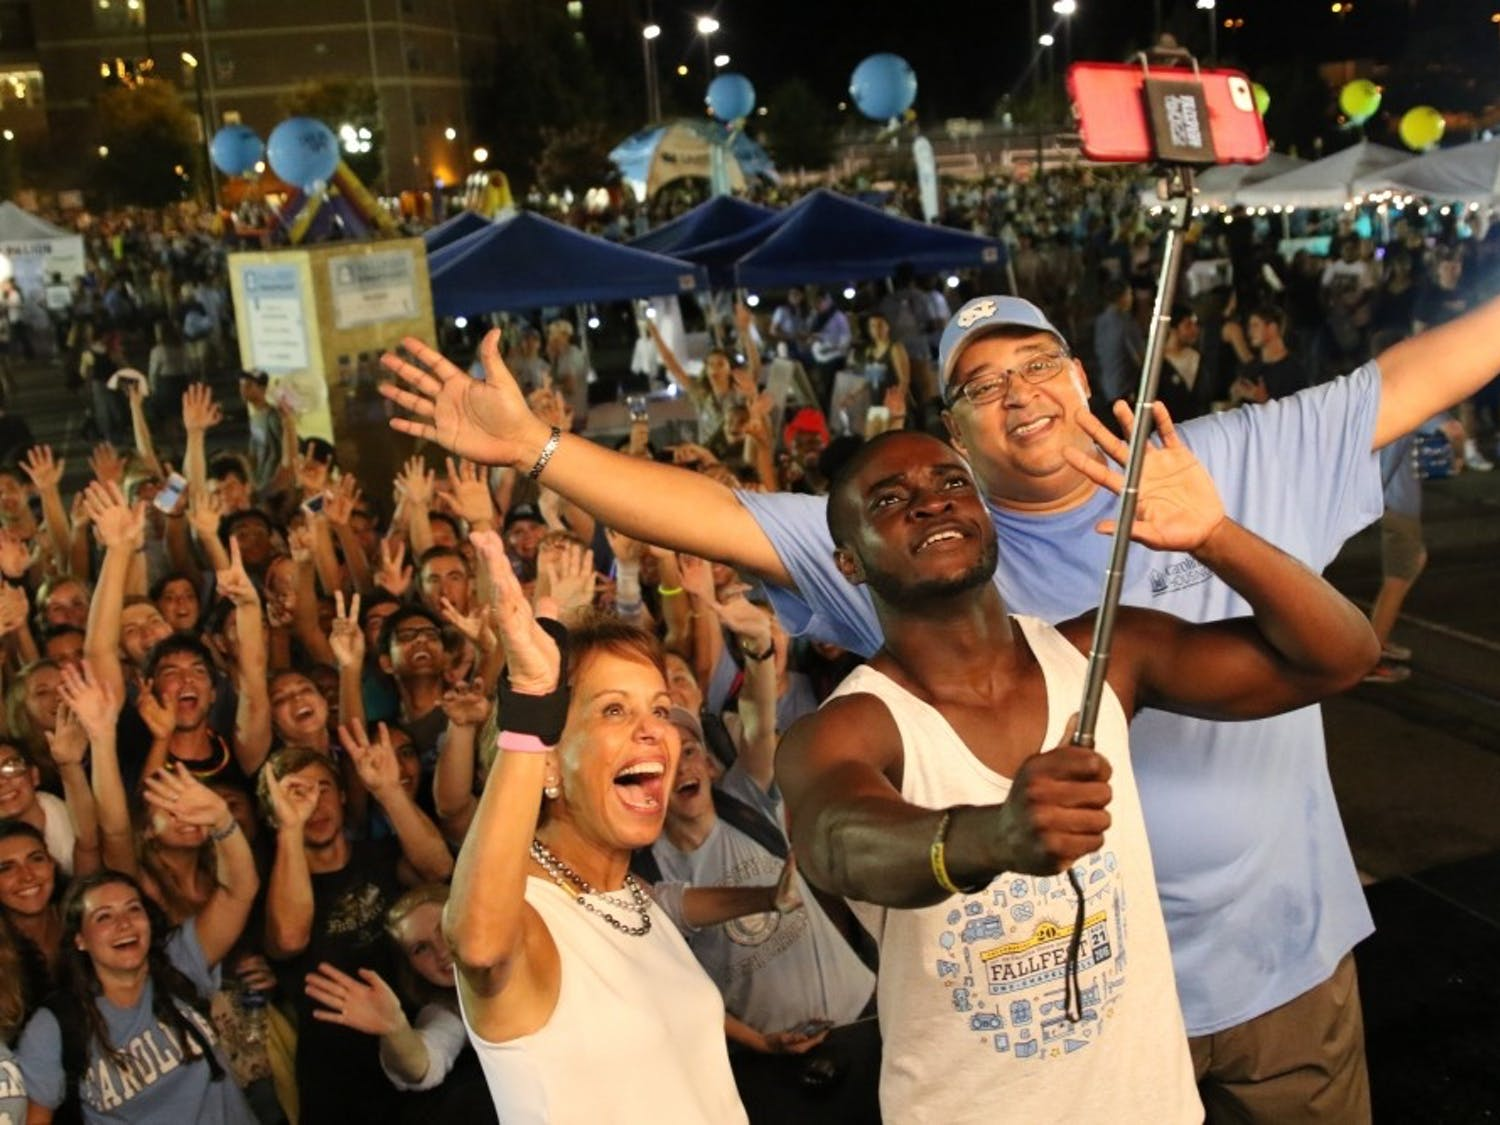 Chancellor Carol Folt (left), Boateng Kubi ,Chair of Carolina Union Board of Directors (center) and Vice Chancellor Winston Crisp (right) take a selfie with students at Fall Fest on Sunday, Aug. 21, 2016.